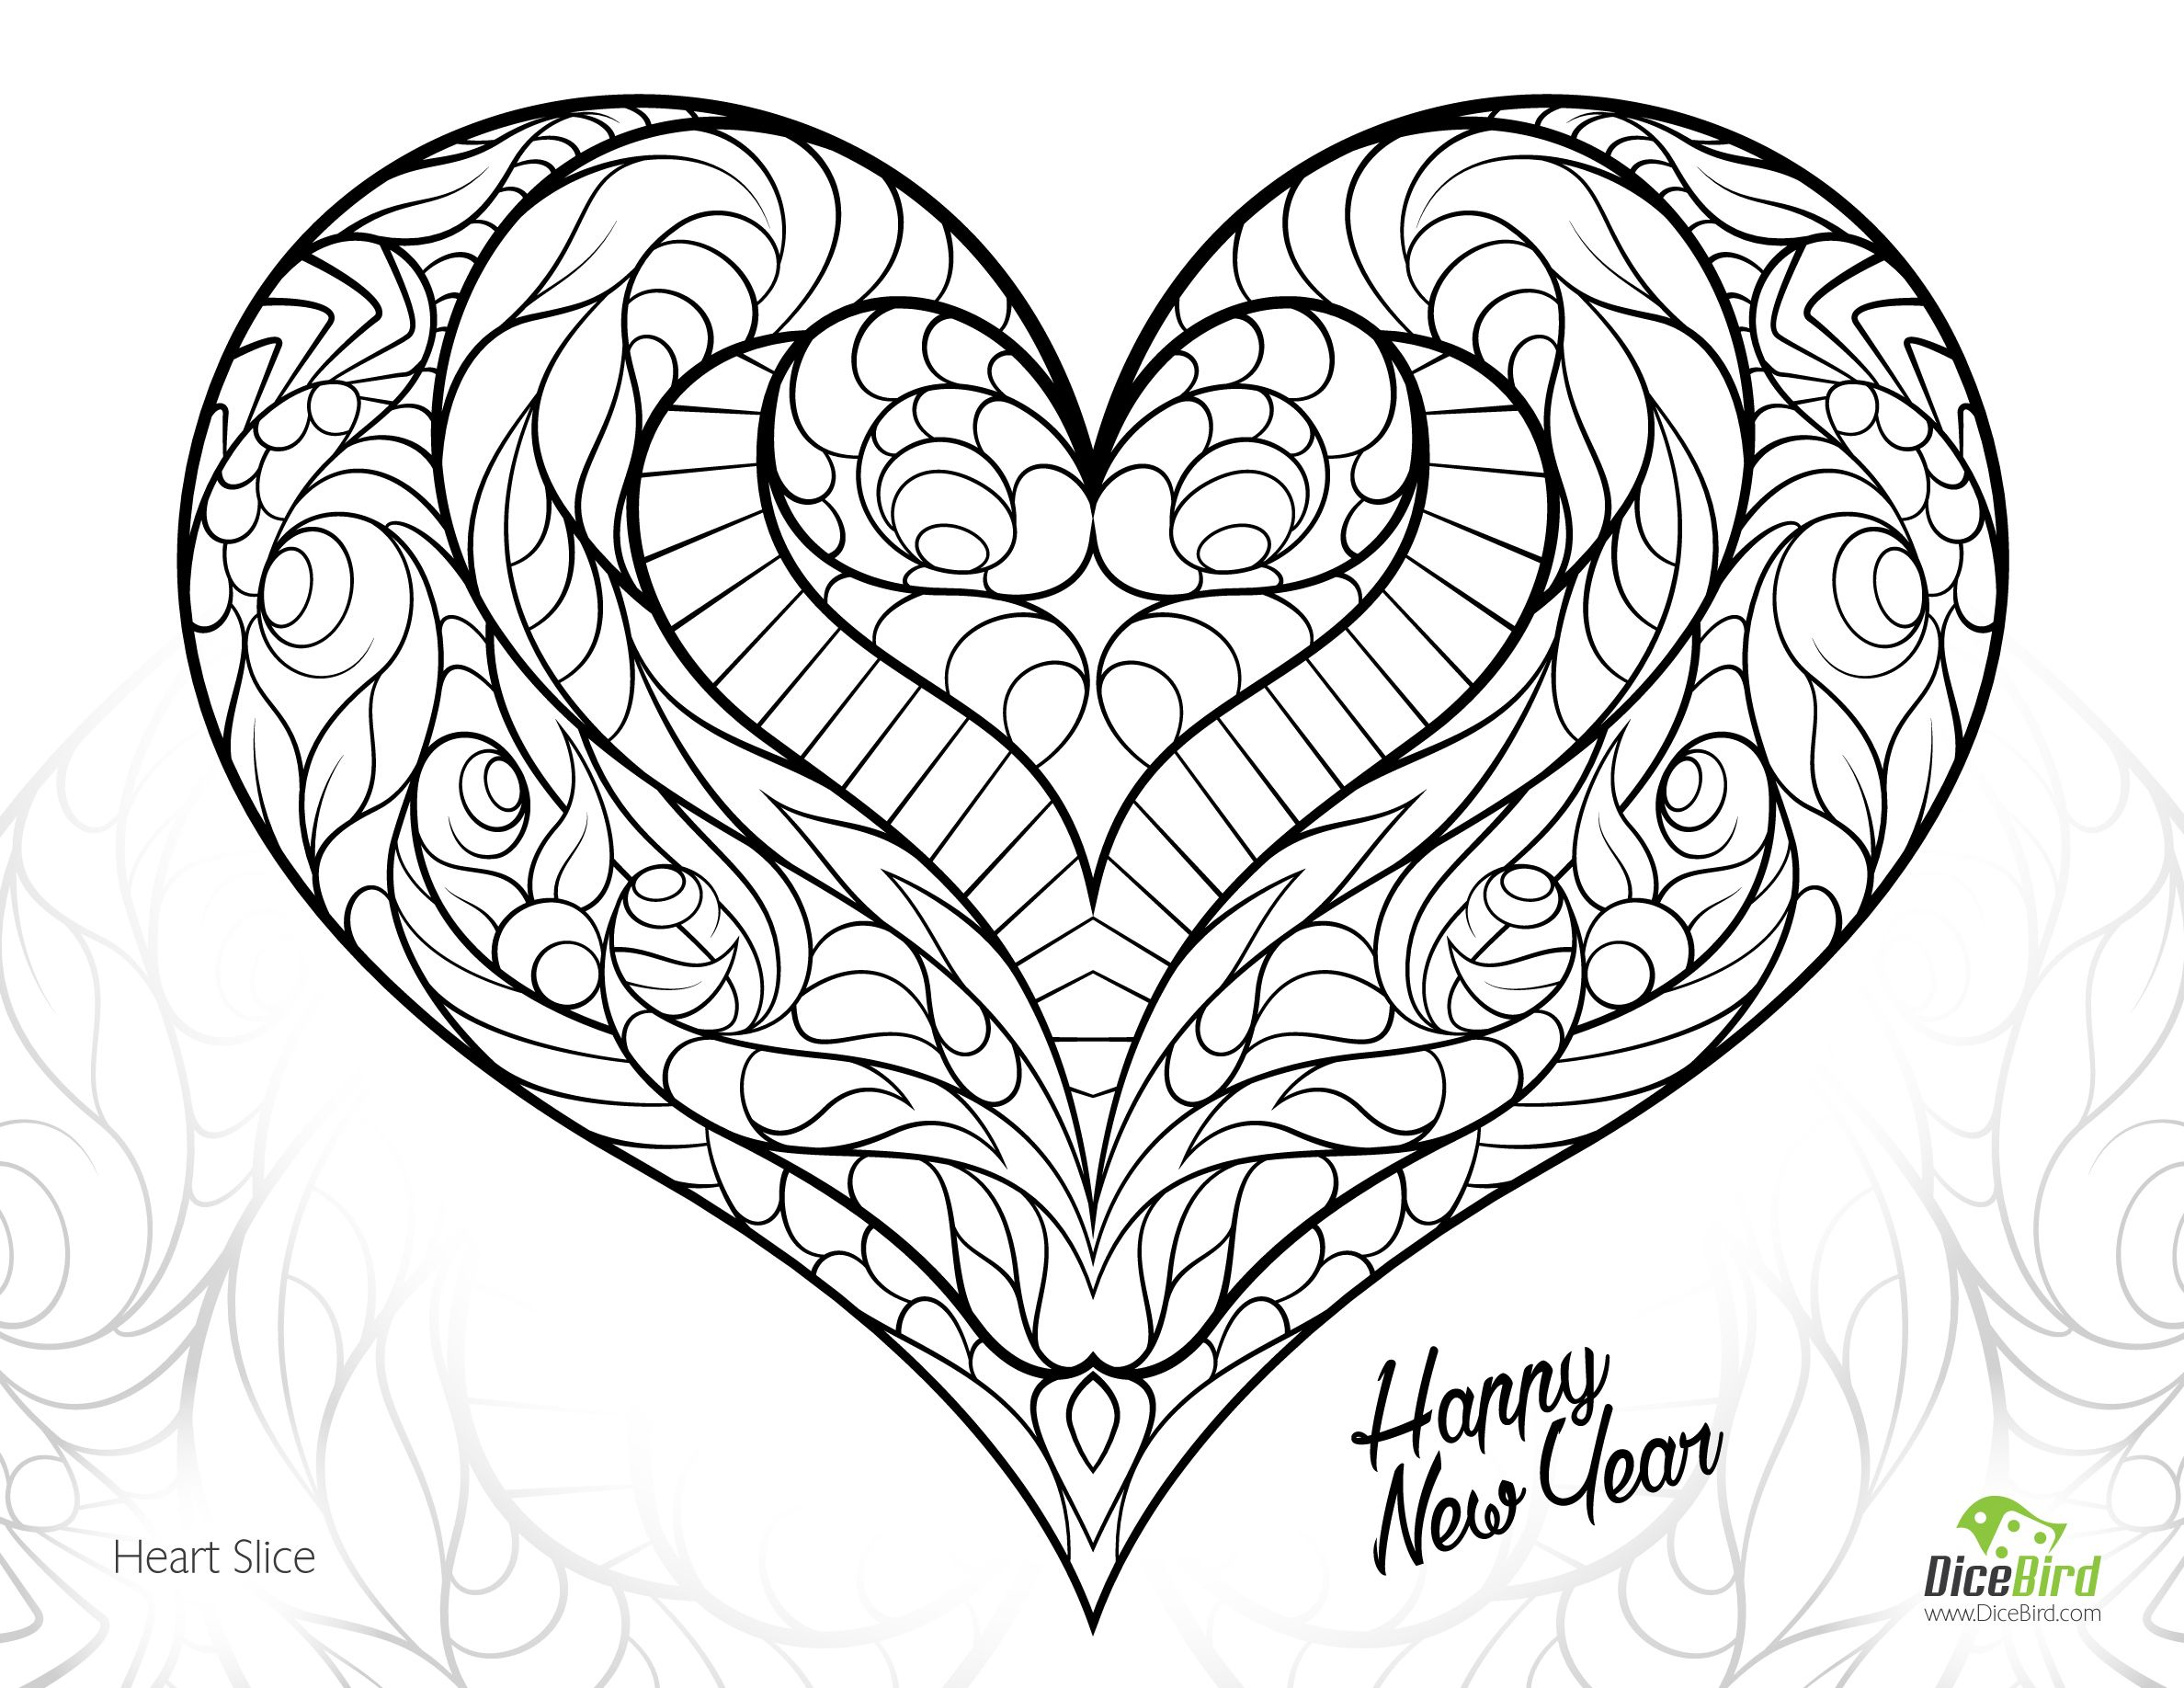 Heart Slice Free Adult Coloring Pages Printable Love Coloring